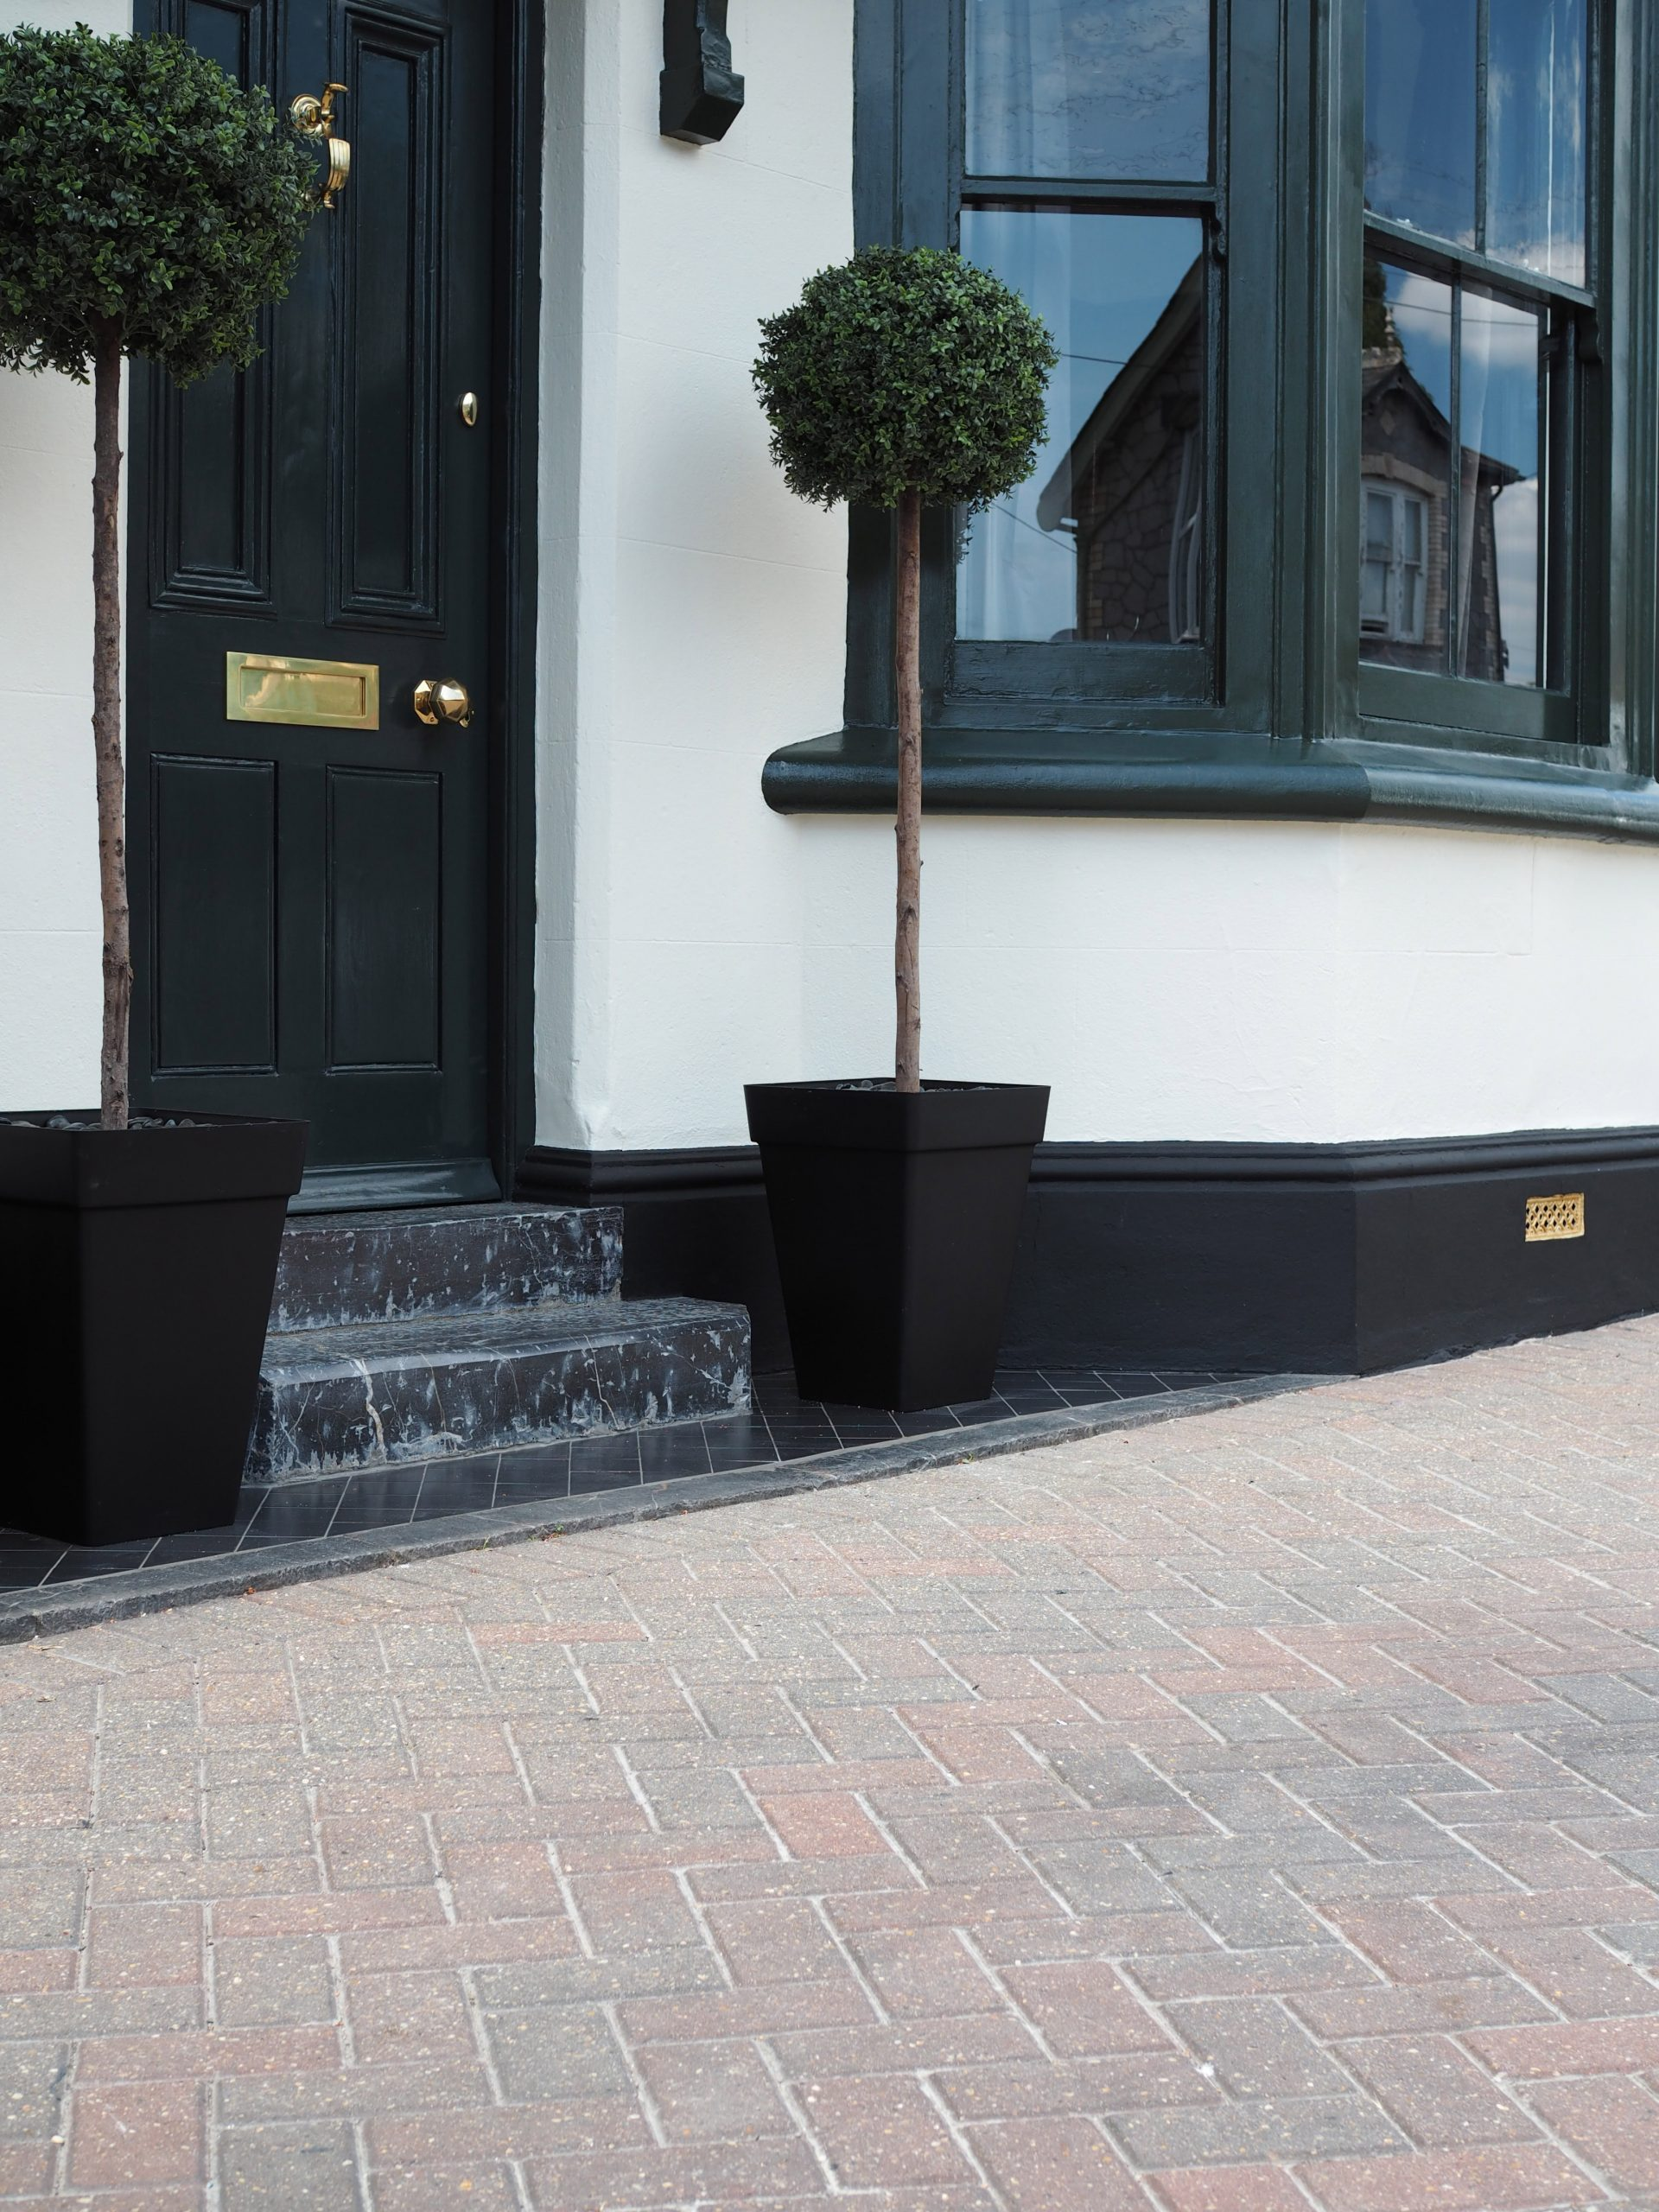 Kerb Appeal - 10 Ways to Improve the Appearance of Your Home